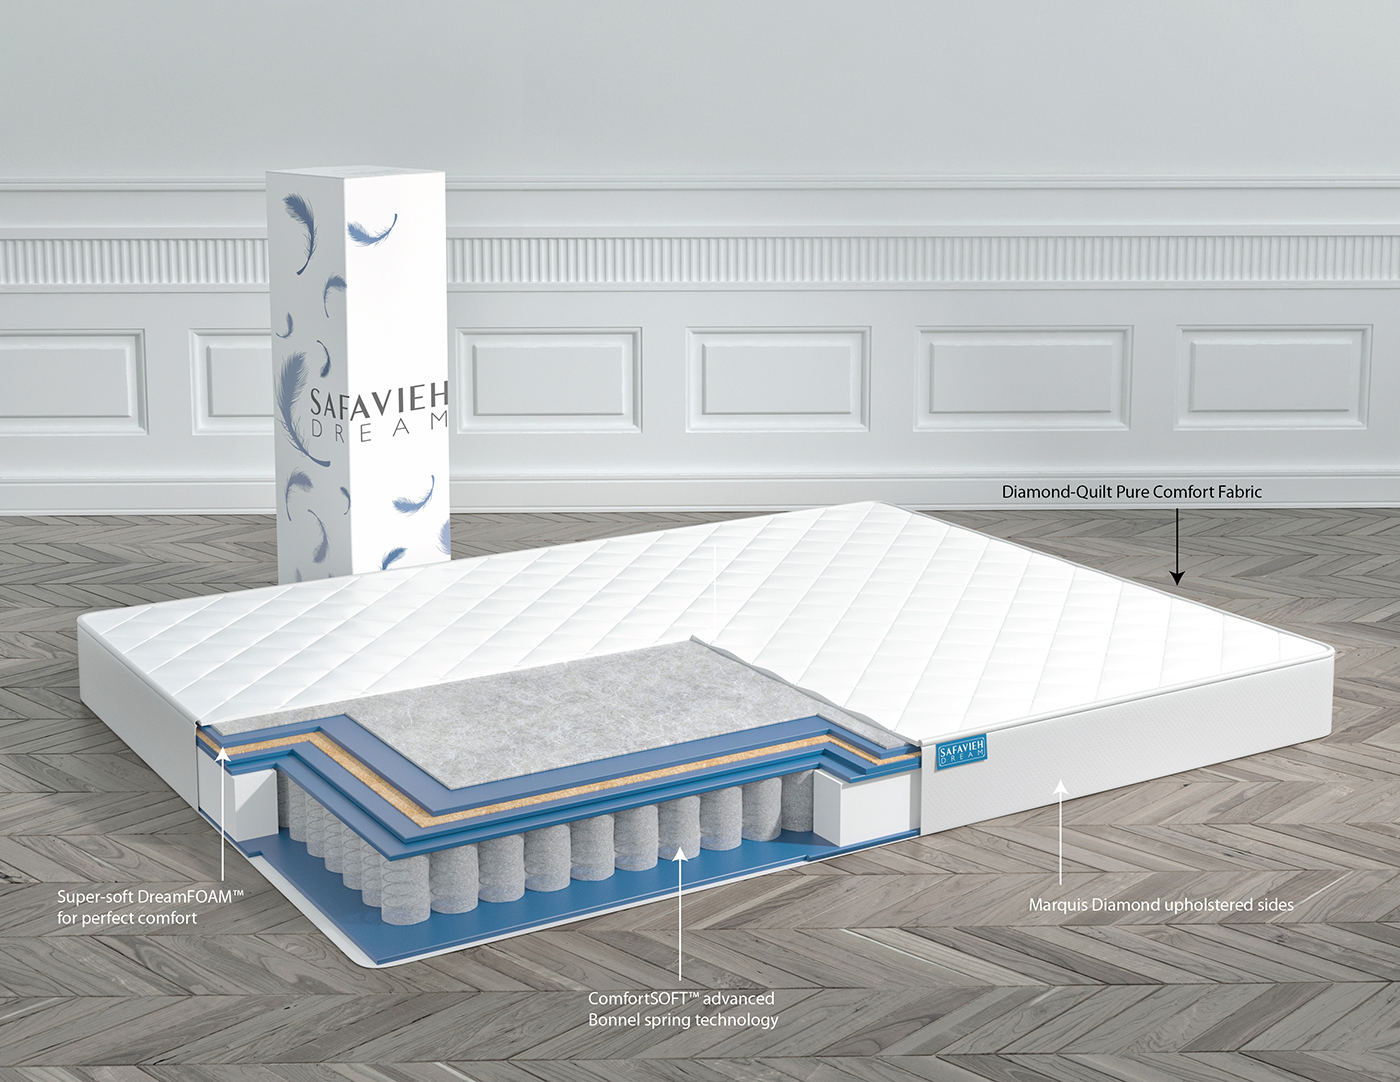 Safavieh expands with shippable mattress line